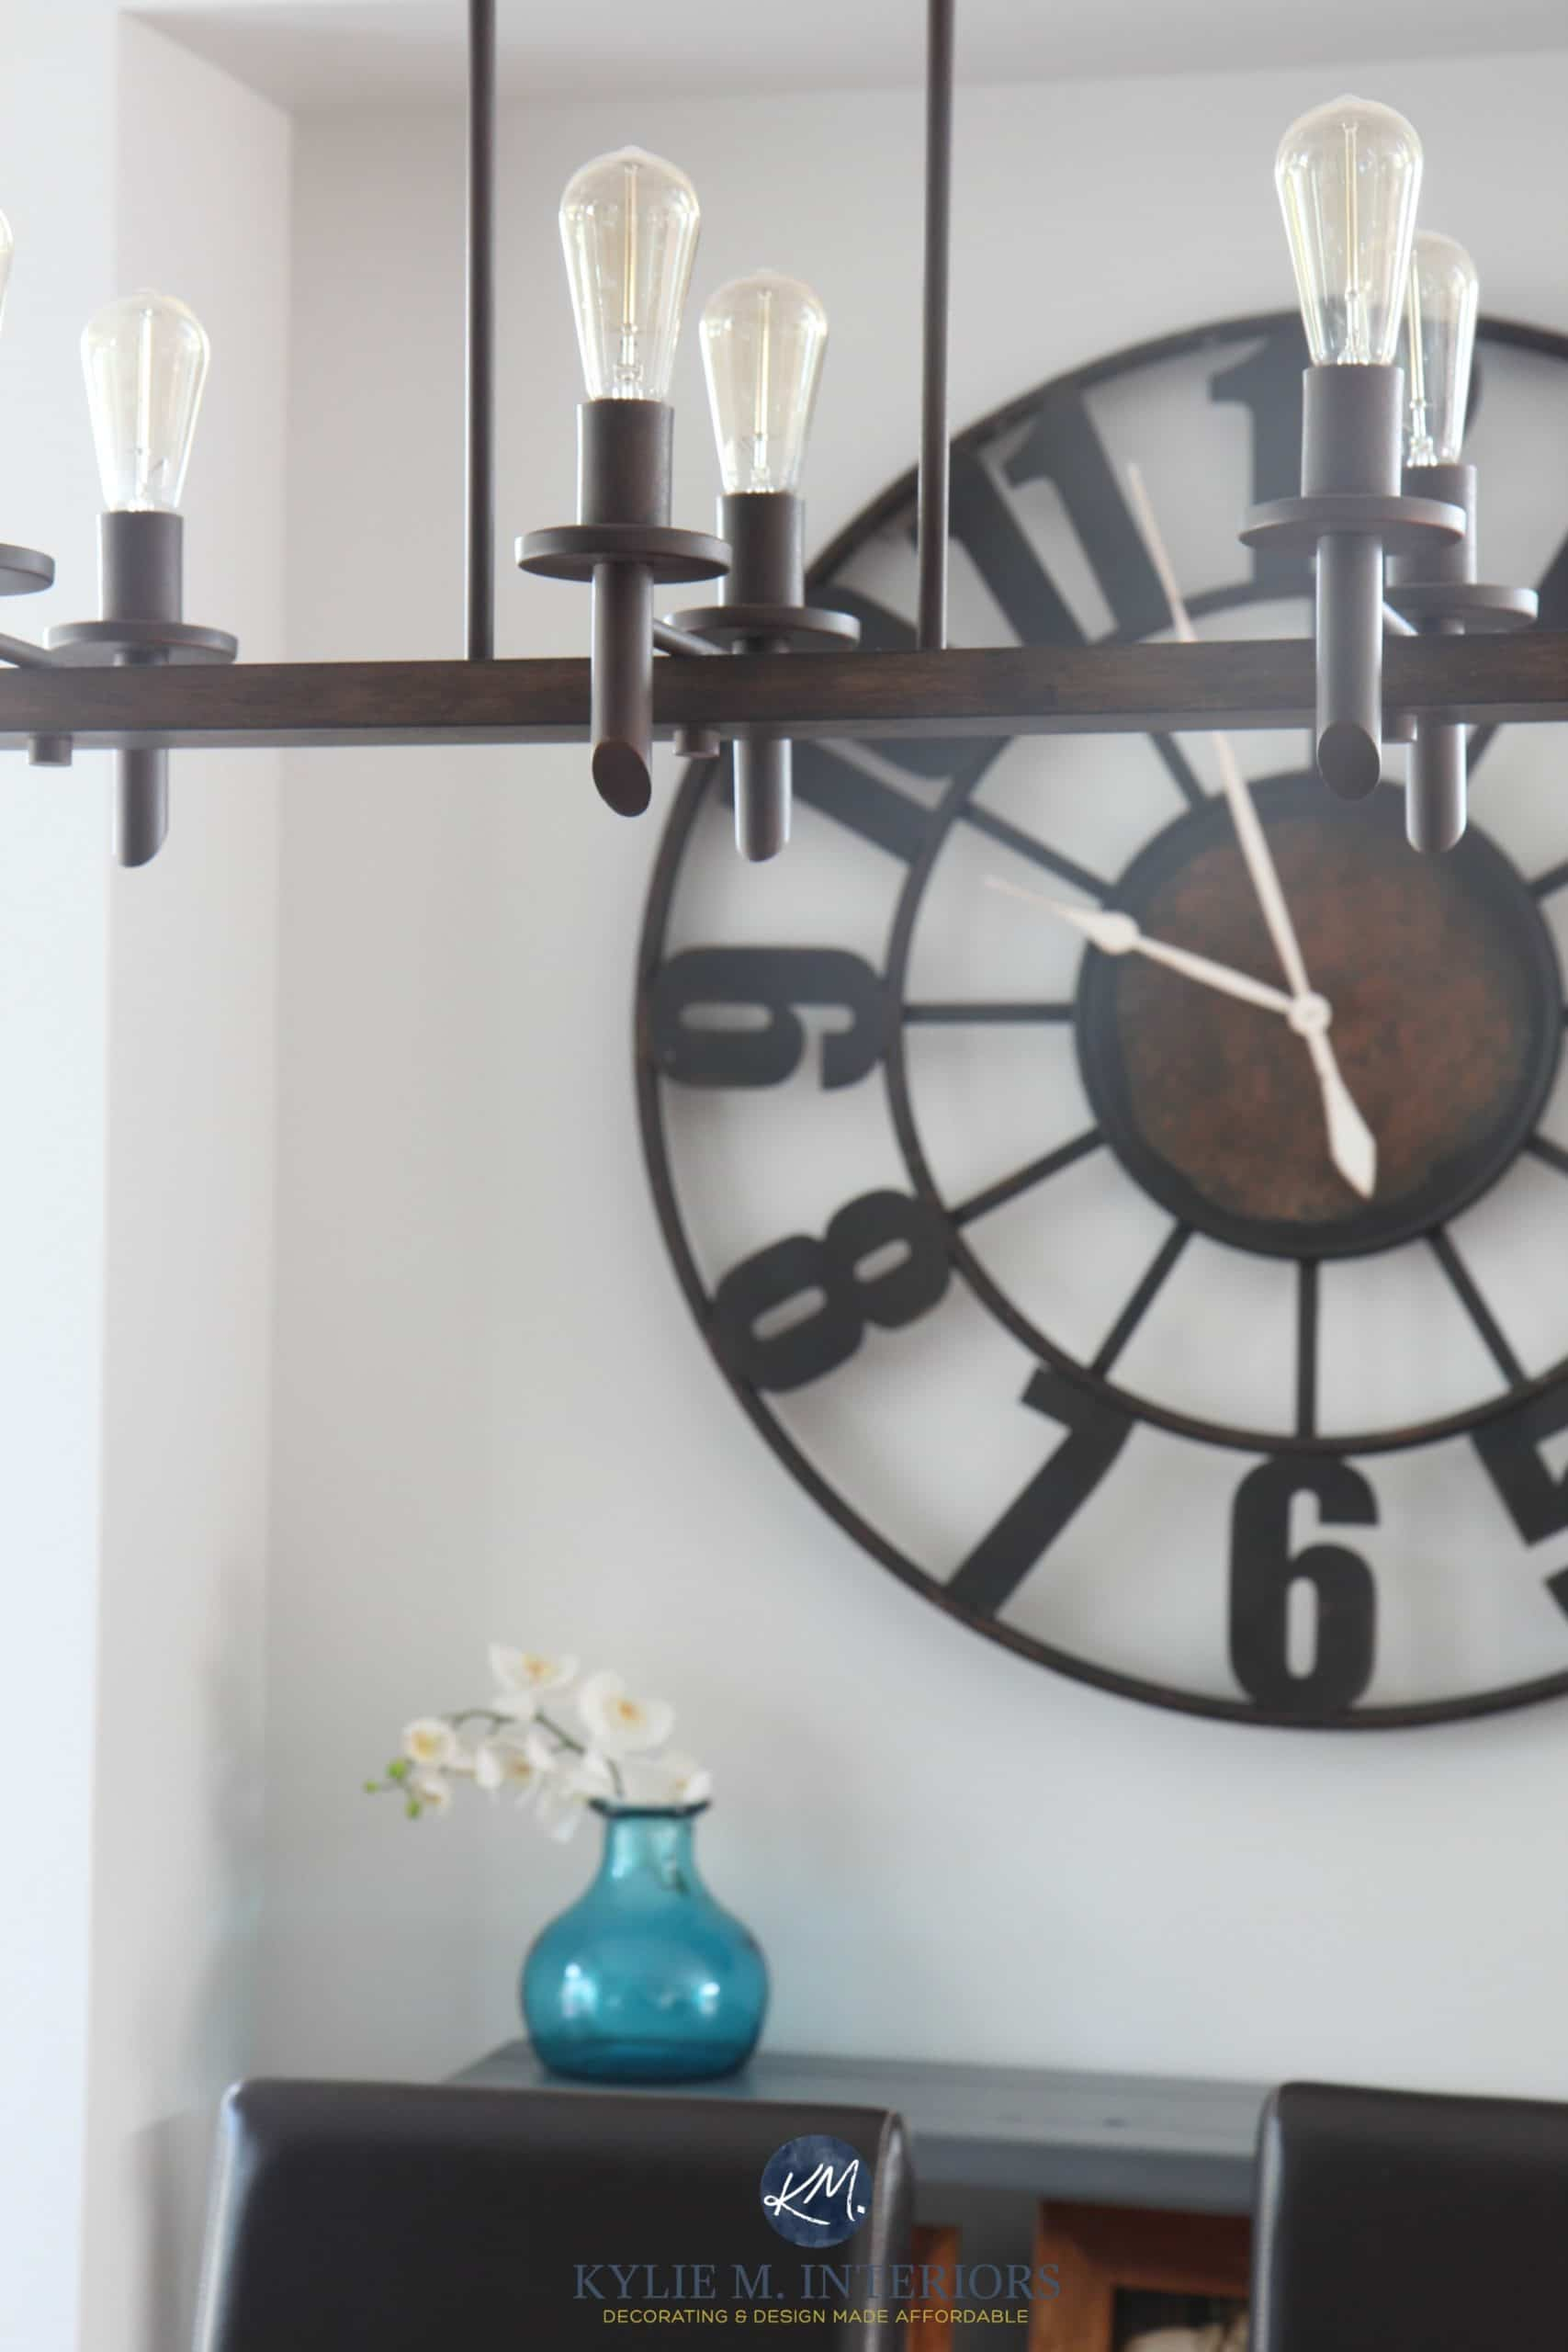 How to Decorate with Large Clocks (and my favourite